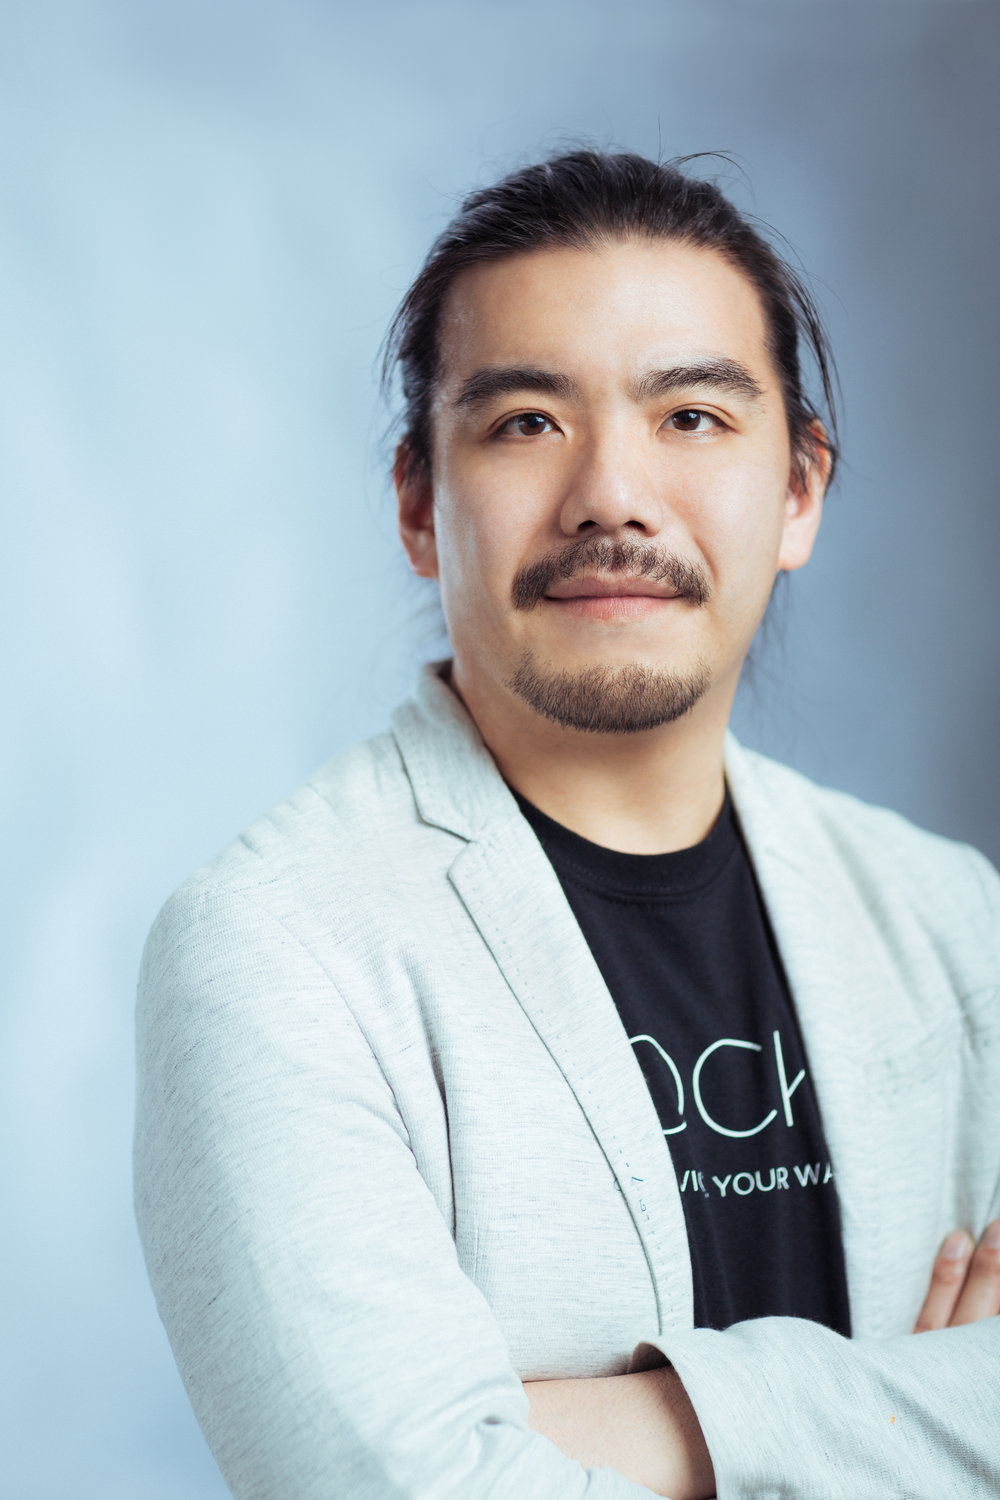 Fred Chak, Founder of the Blocks wearables